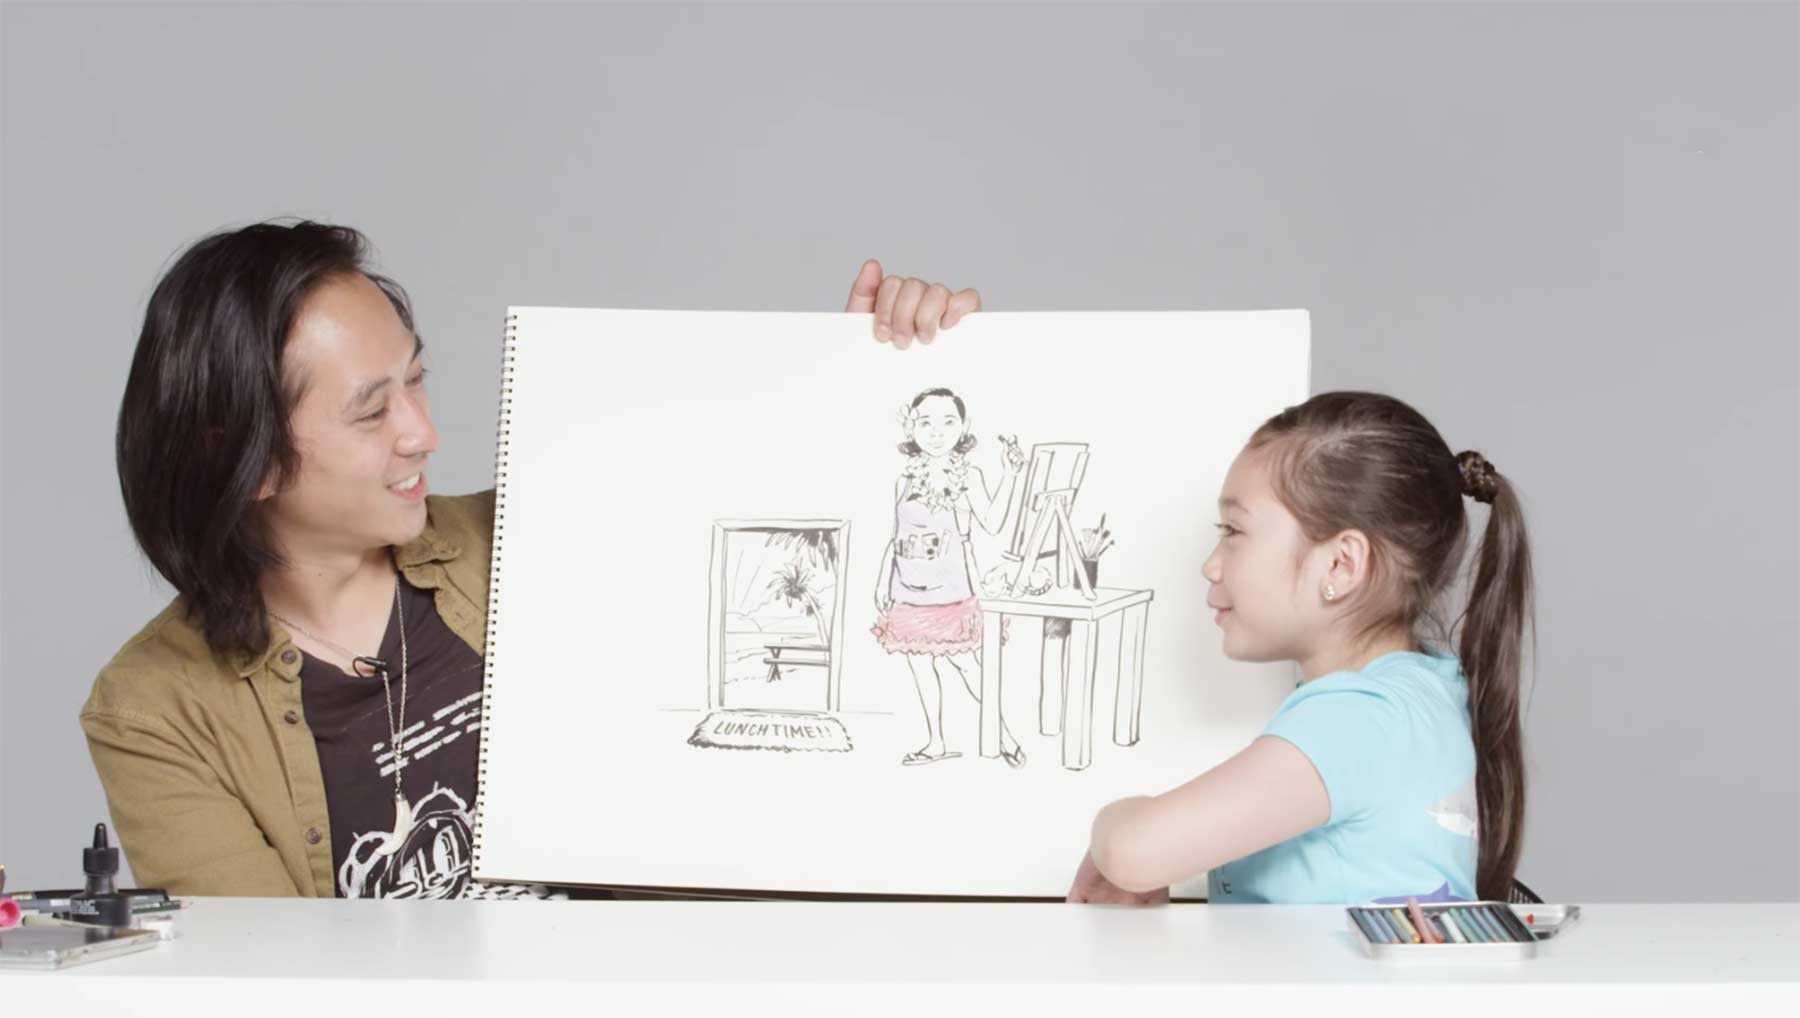 Kinder beschreiben Illustrator ihre Traumjobs Kids-Describe-Their-Dream-Job-to-an-Illustrator